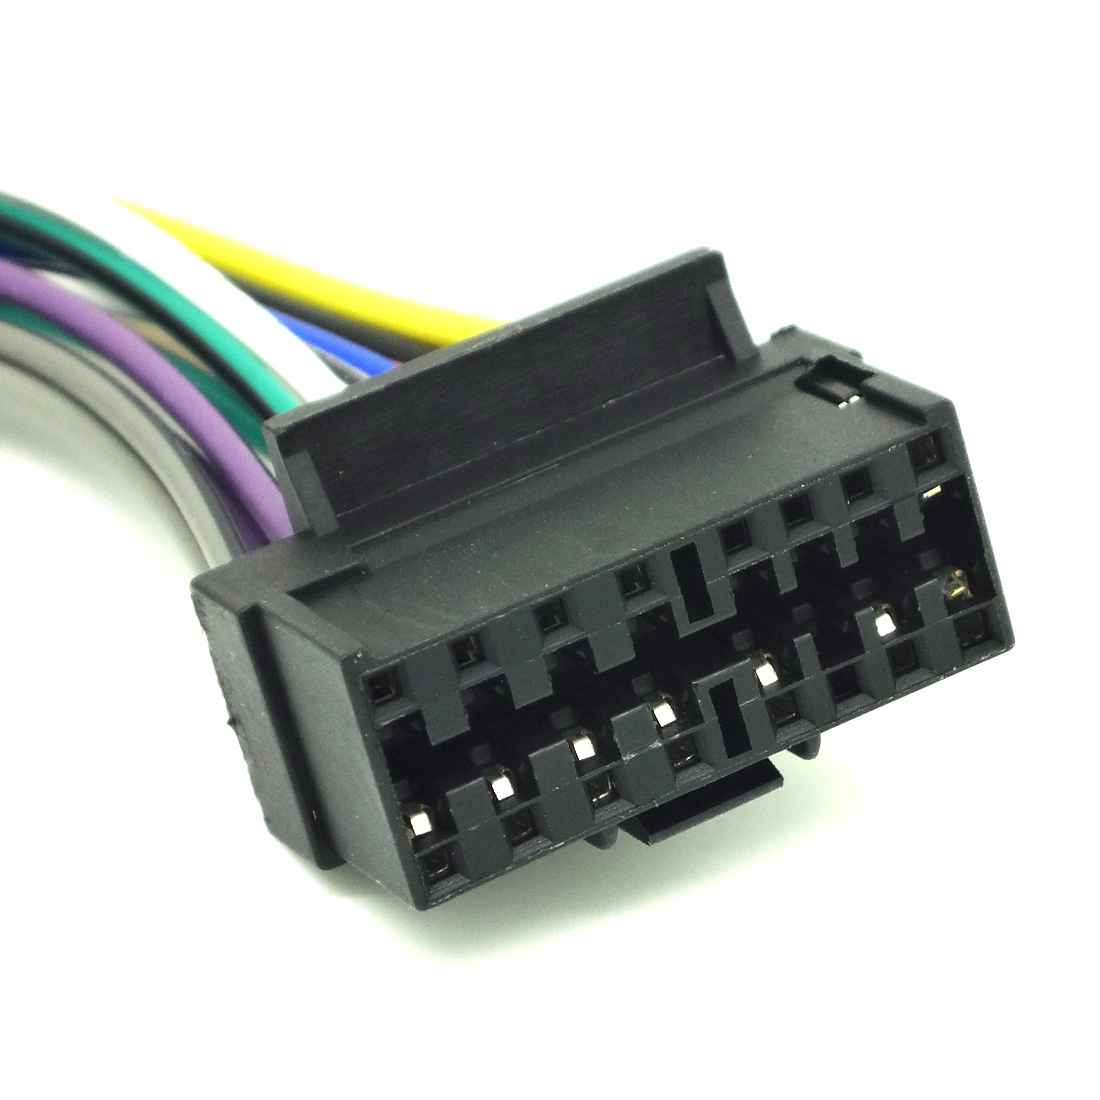 small resolution of jvc kd g310 wiring diagram wiring diagram 610 radio wire harness for jvc kd